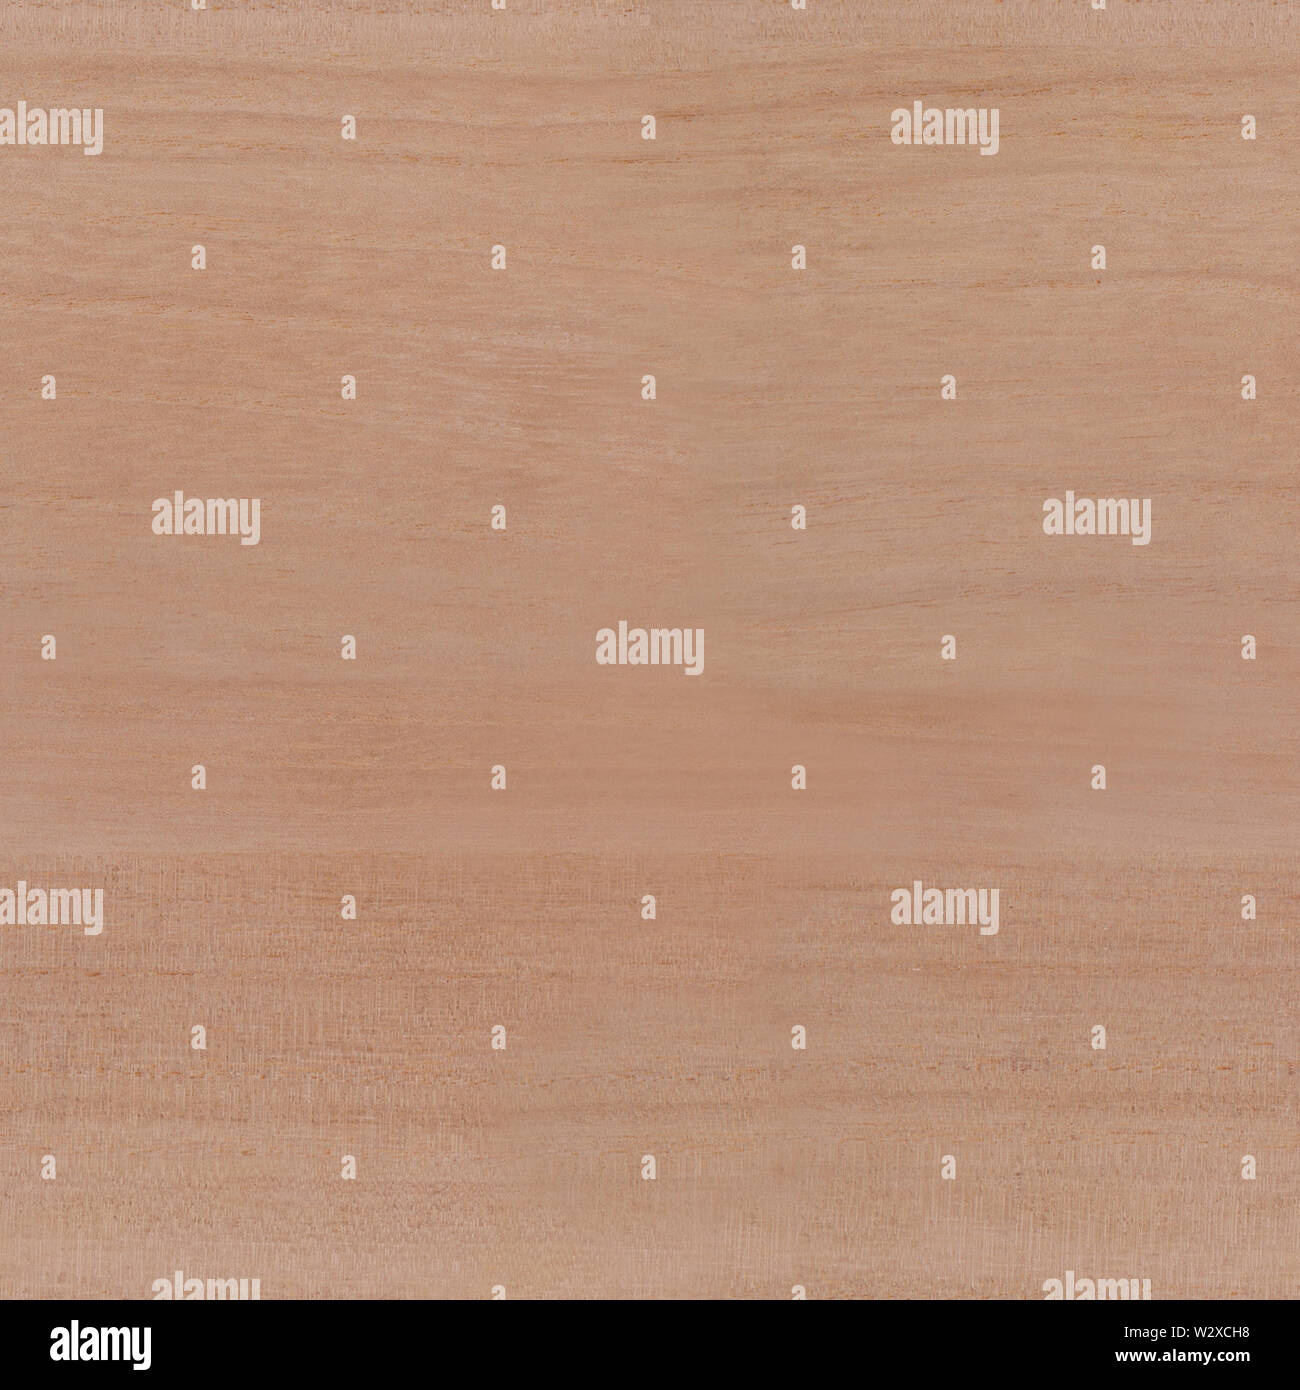 Seamless texture. wood pattern. tile able. - Stock Image